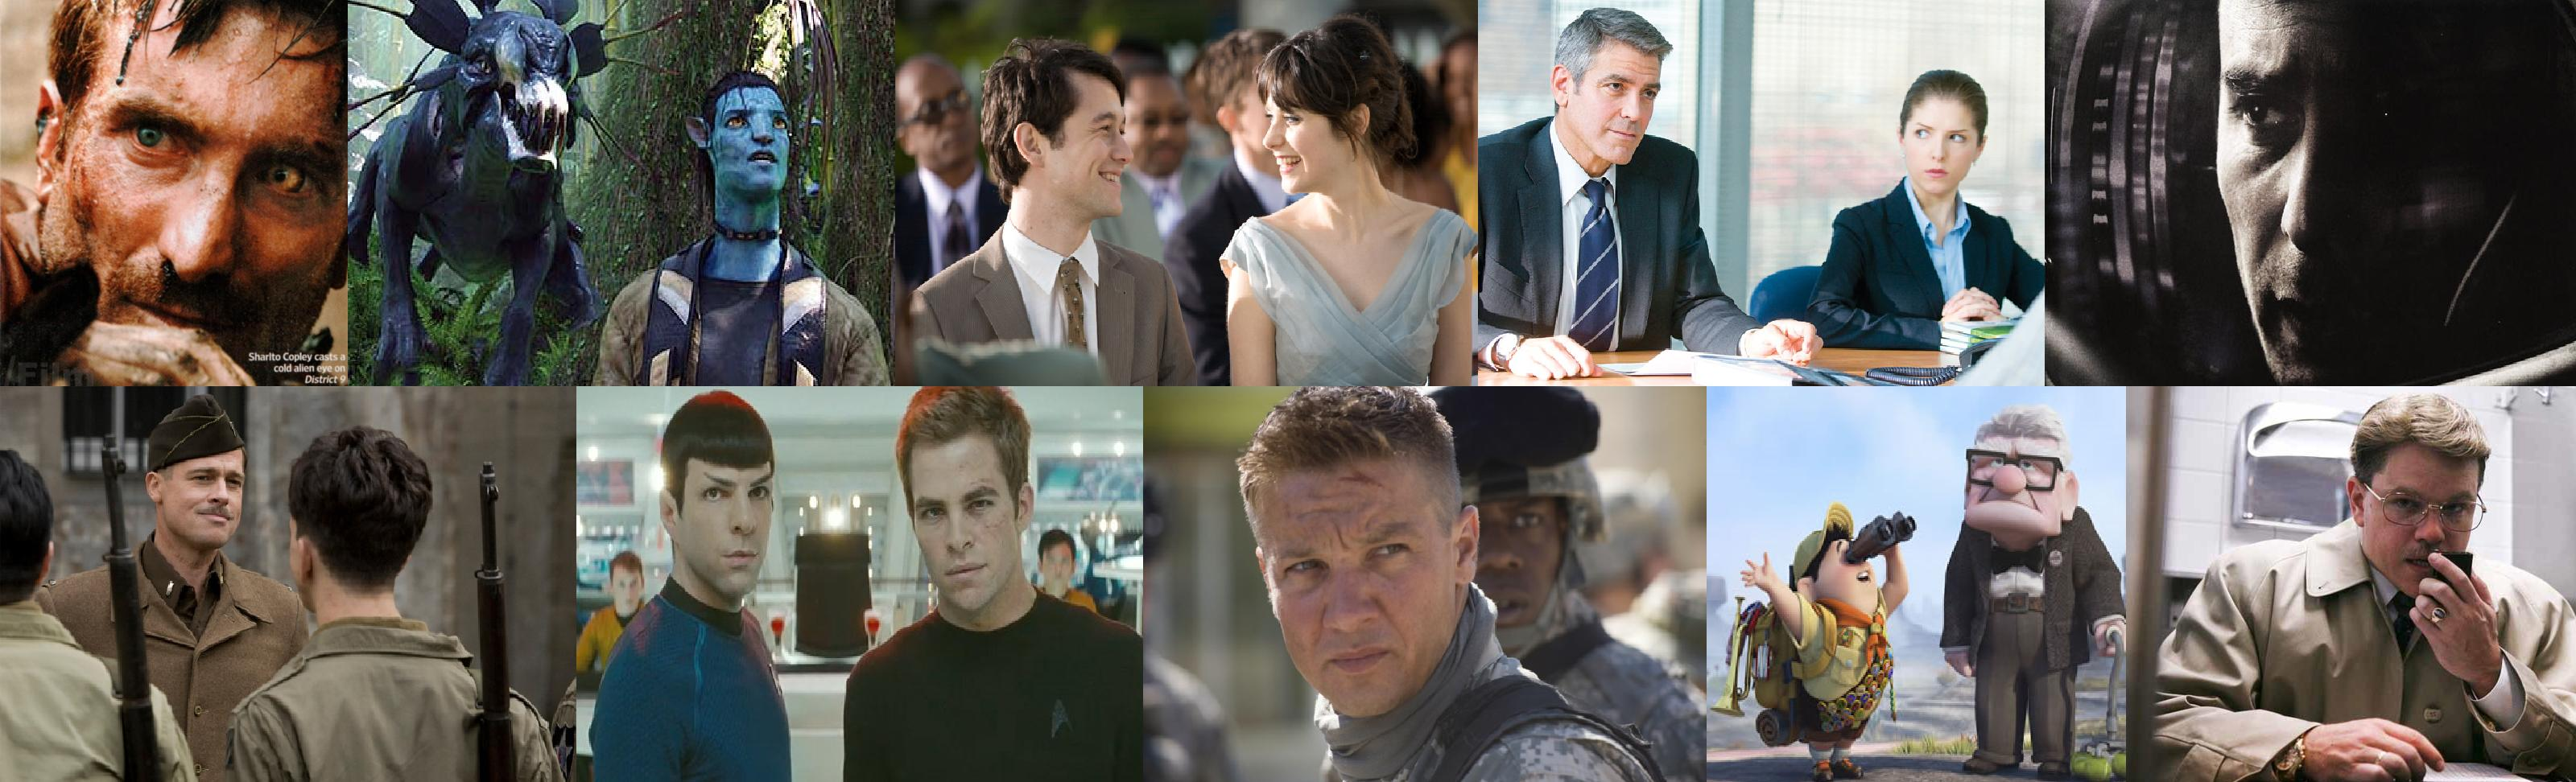 Best of '09/Pre-Academy Awards Analysis